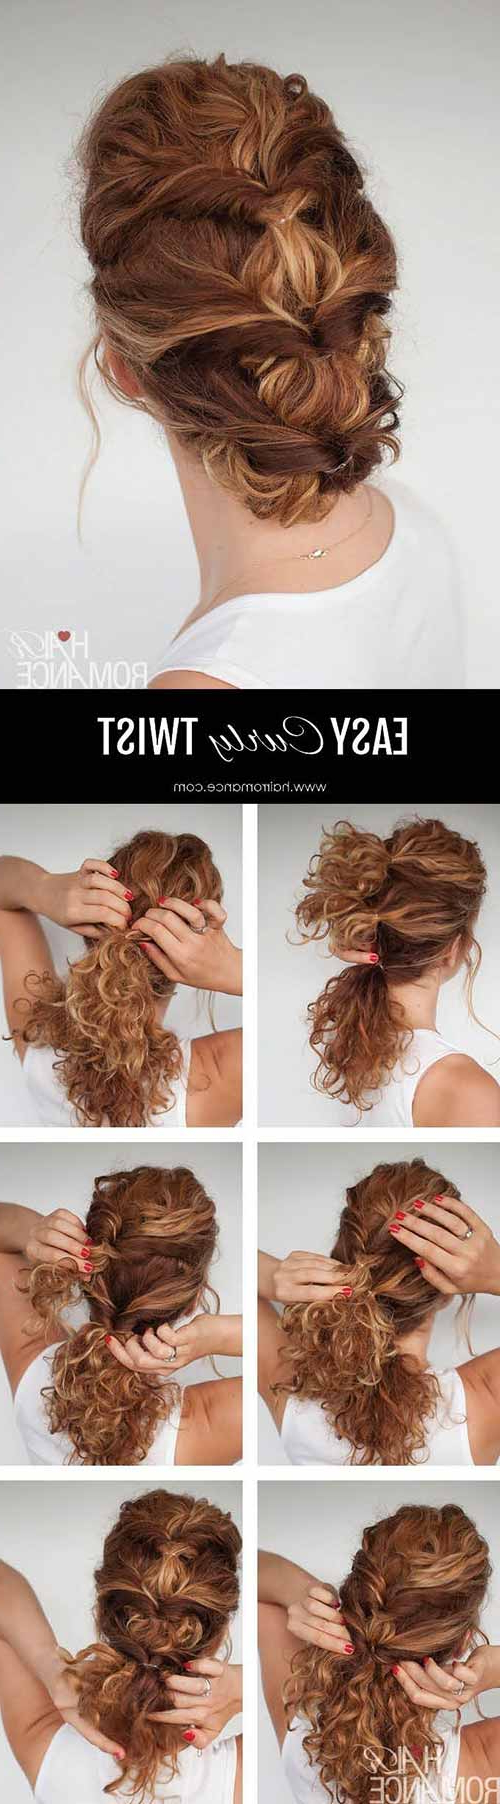 20 Incredibly Stunning Diy Updos For Curly Hair In Favorite Thick Wheel Pattern Braided Hairstyles (View 3 of 20)